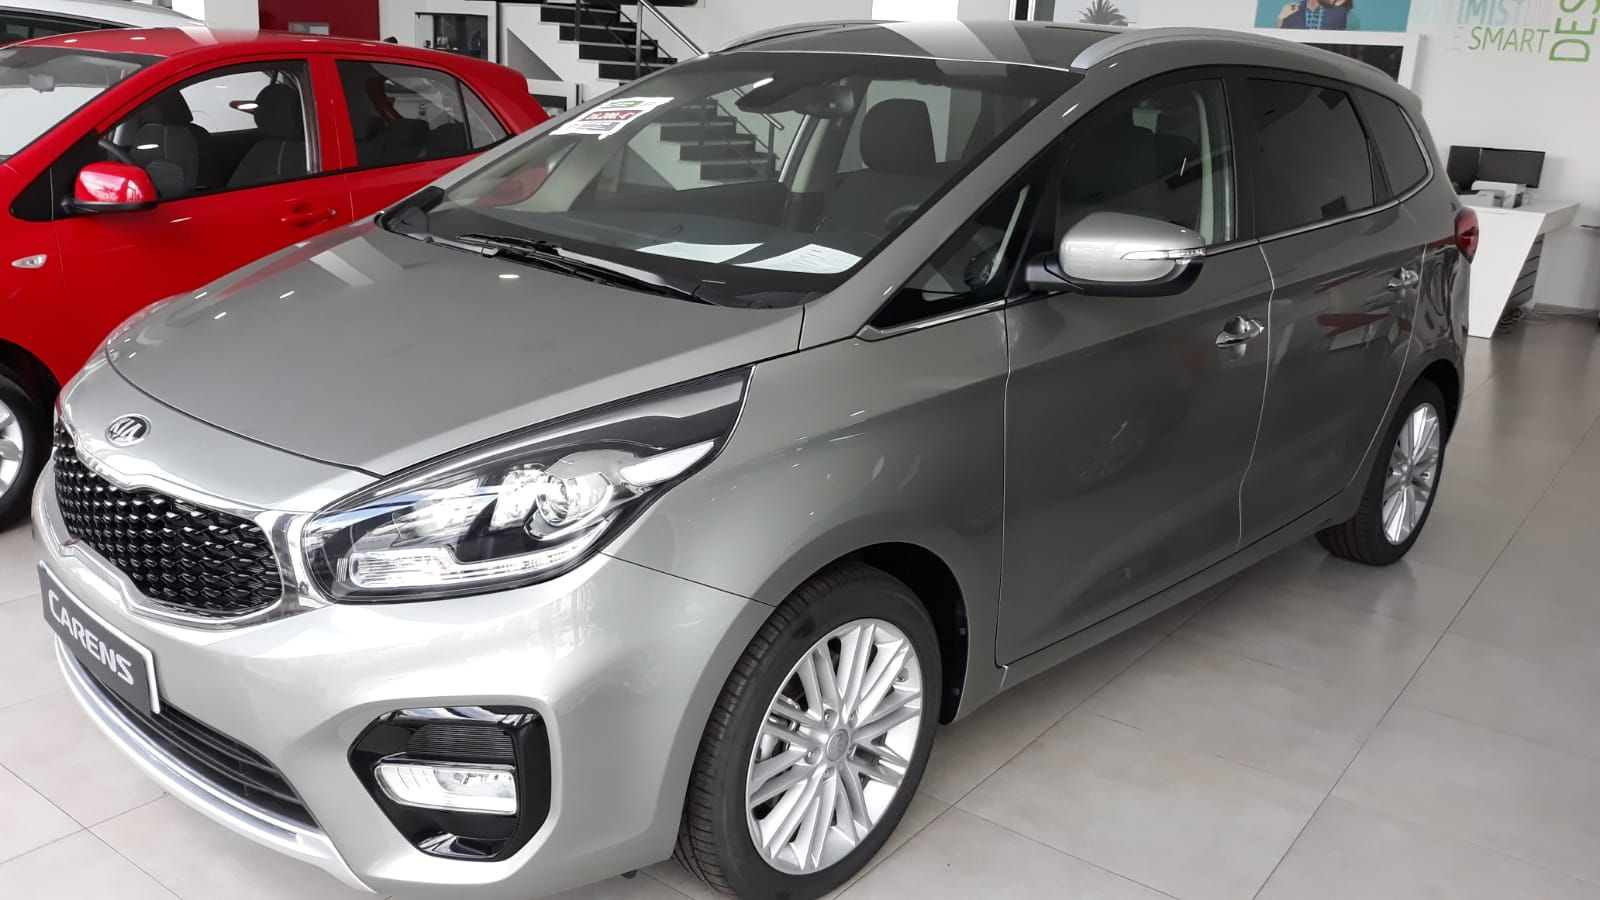 KIA CARENS 1.6 GDI DRIVE 7 PLAZAS COLOR CELESTIAL SILVER POR SOLO 16.200€* FINANCIANDO